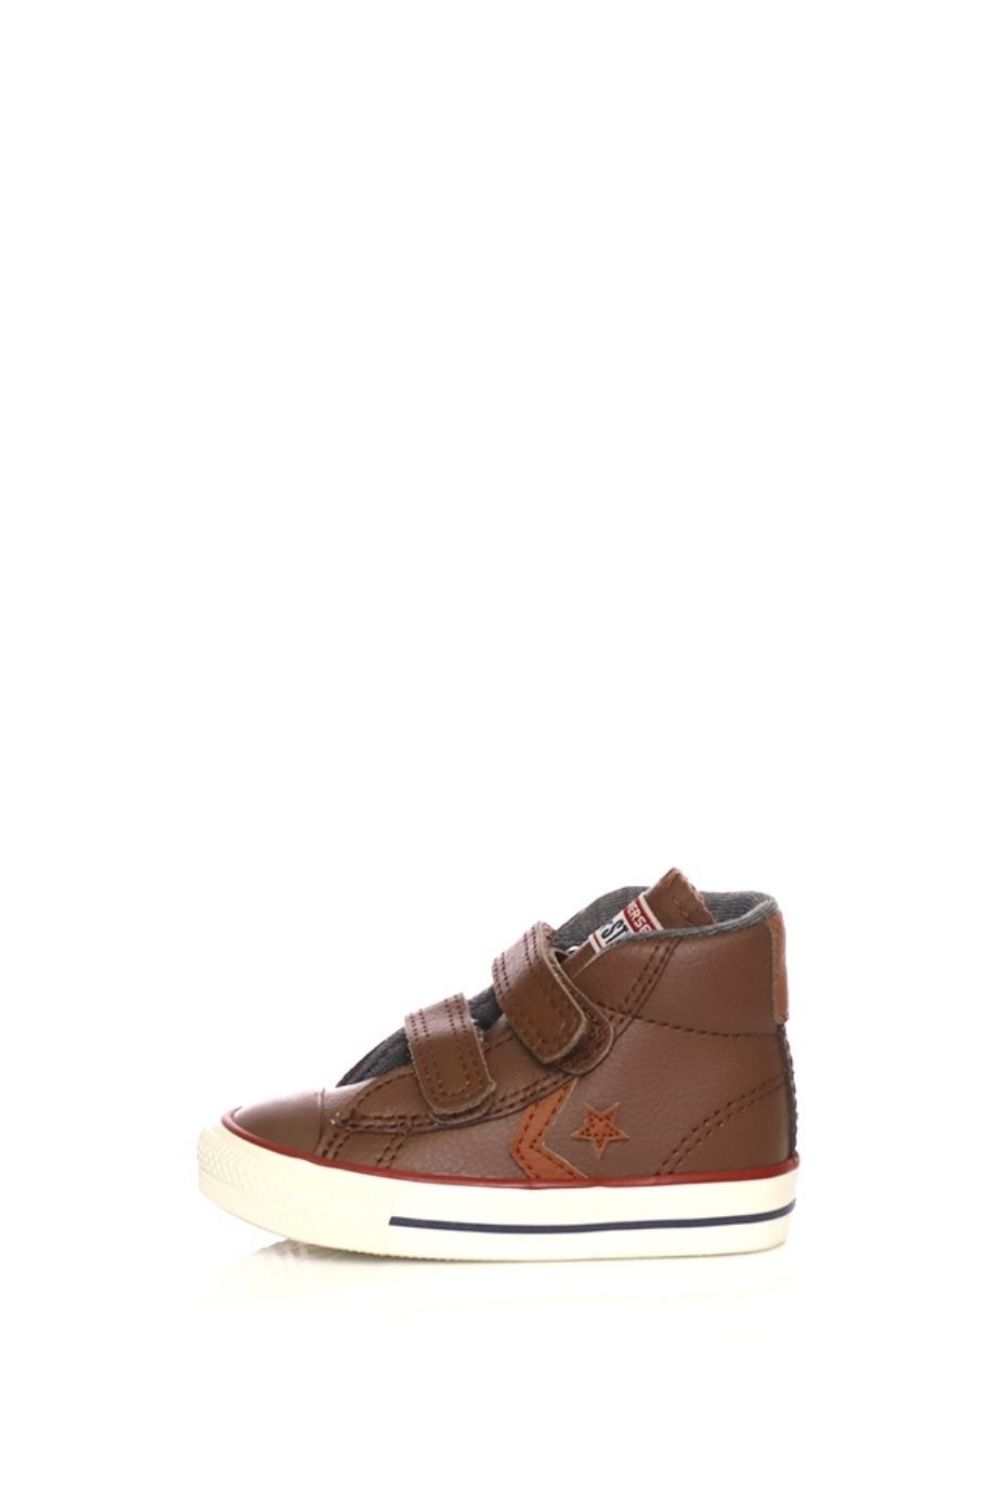 -48% Collective Online CONVERSE – Βρεφικά παπούτσια CONVERSE Star Player EV  V Mid καφέ 84e4b1dc9d5